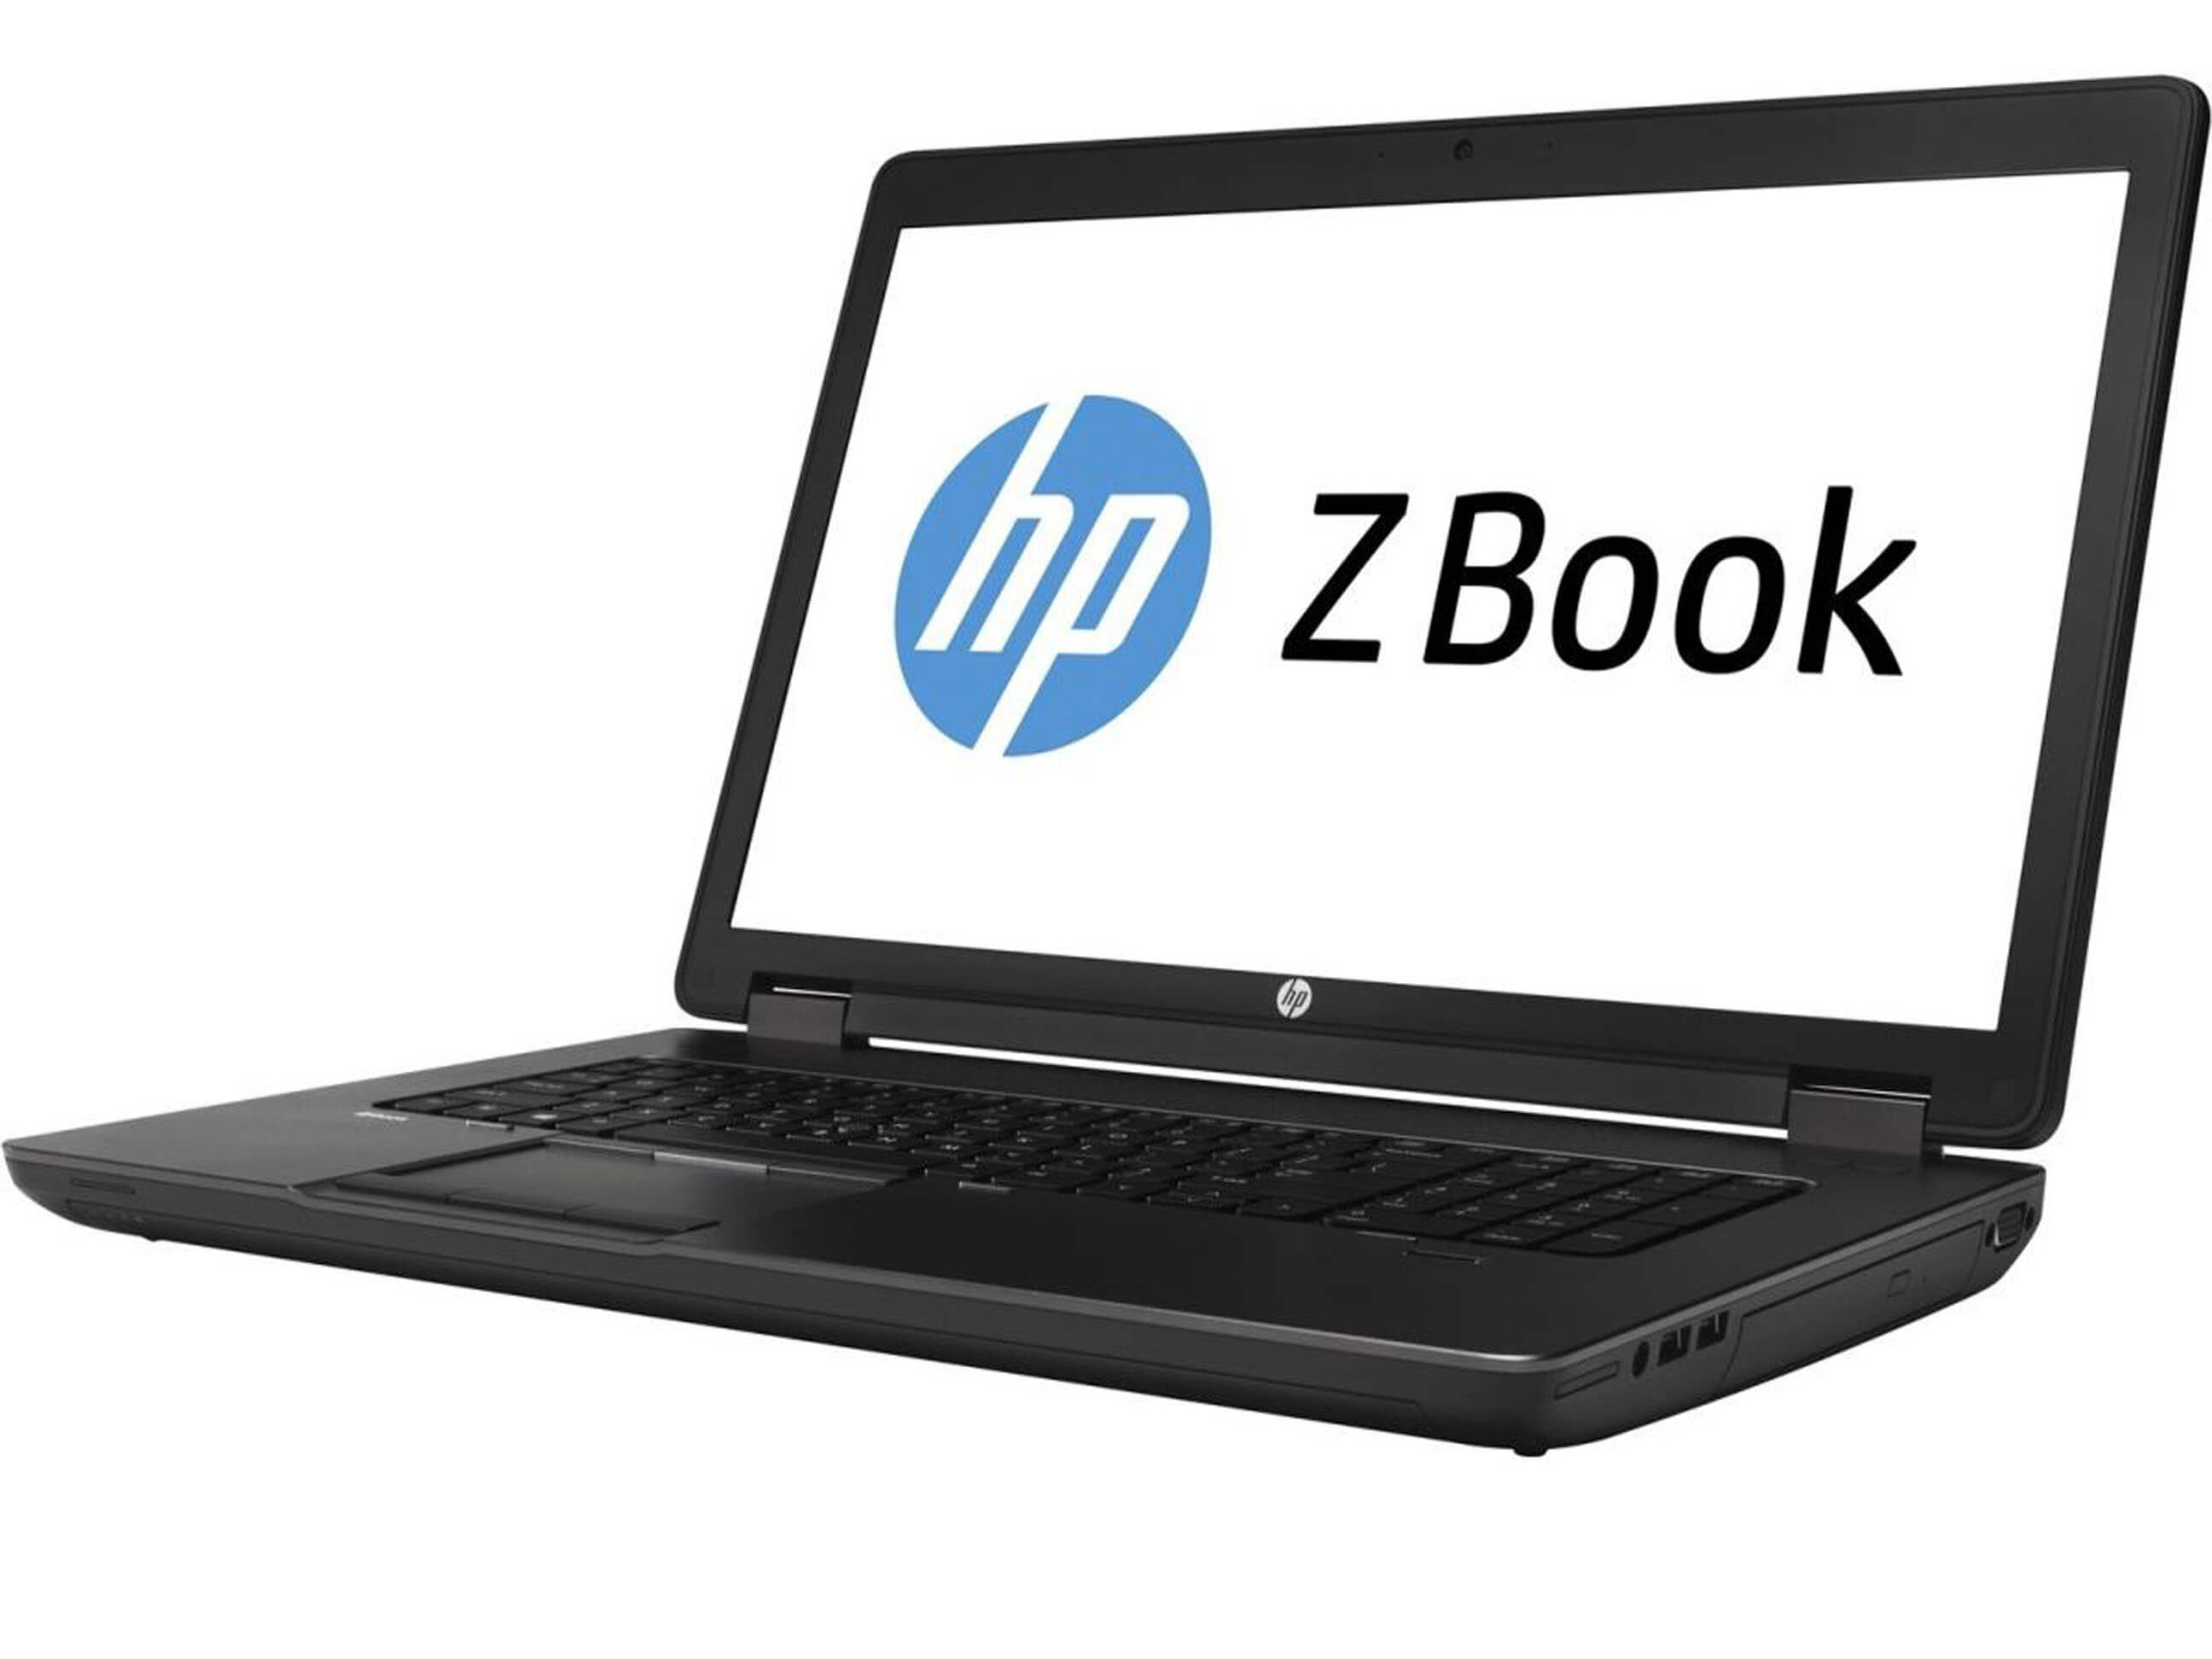 HP ZBOOK 15 G2 I7-4810MQ 2,8 / 16384 MB DDR3L / 256 GB SSD M2 / DVD-RW / WINDOWS 10 PRO REF PL / QUADRO K2100M / 15.6